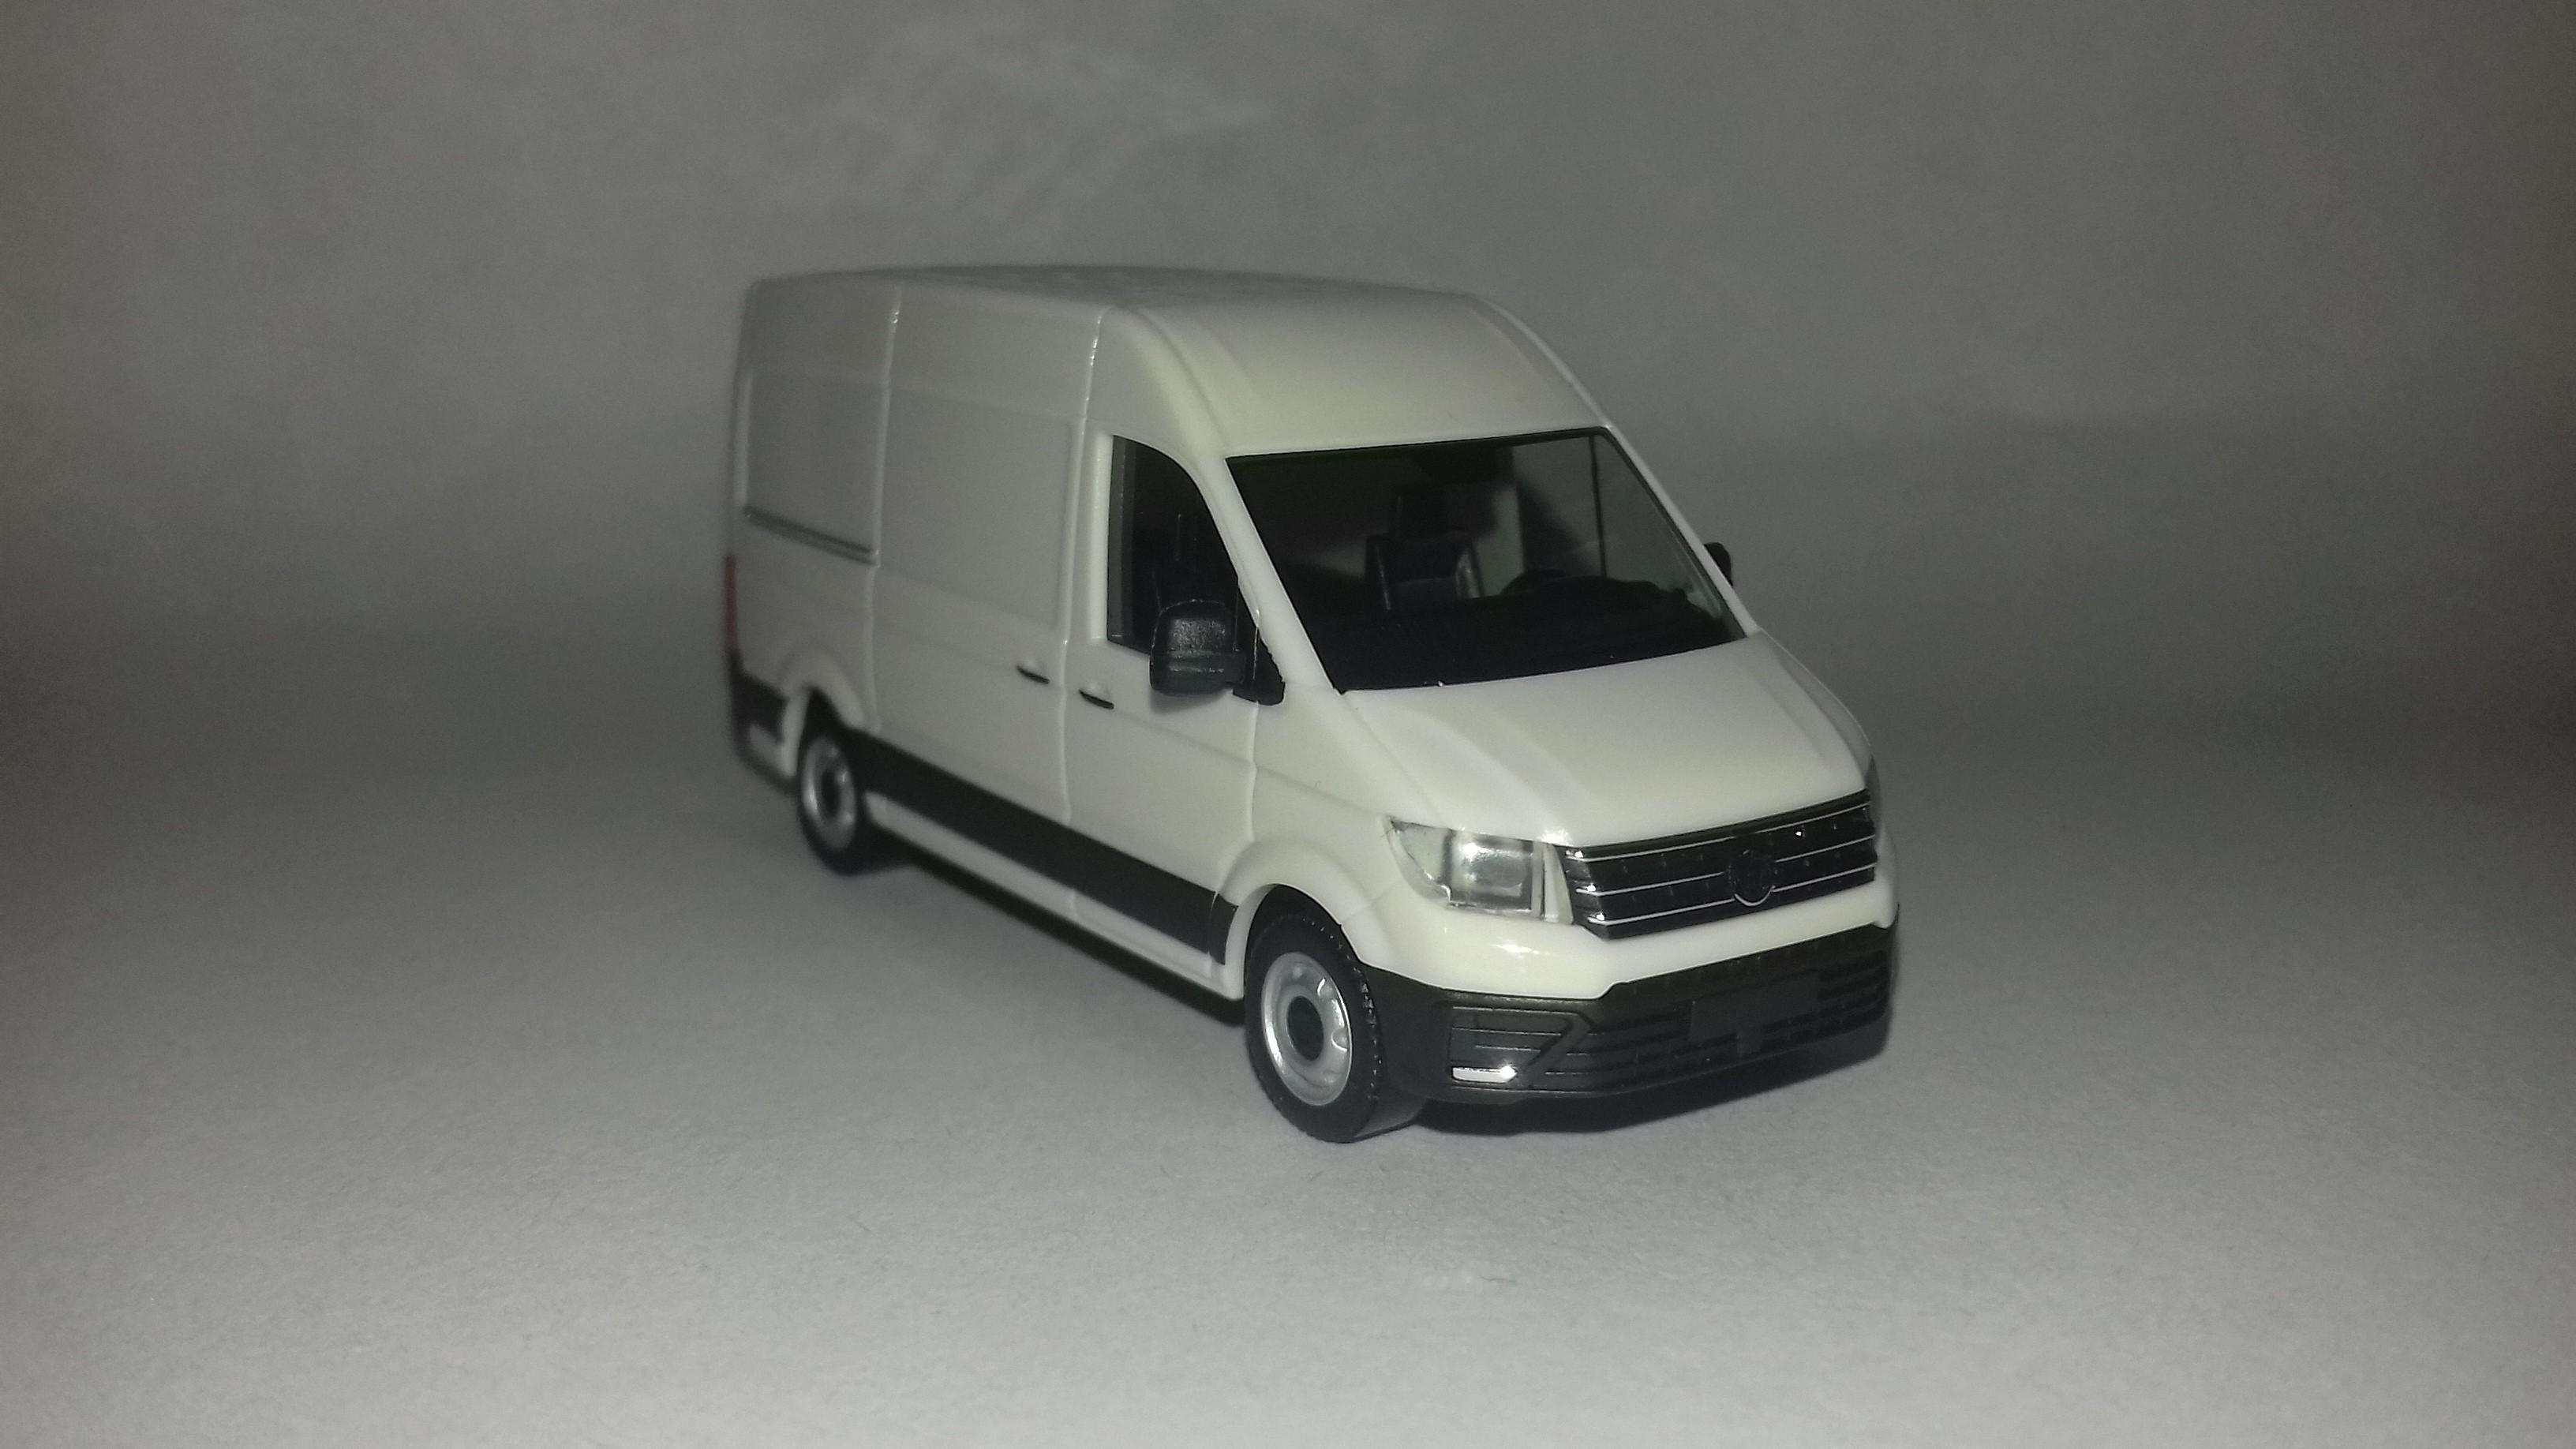 VW Crafter 2 2016 1